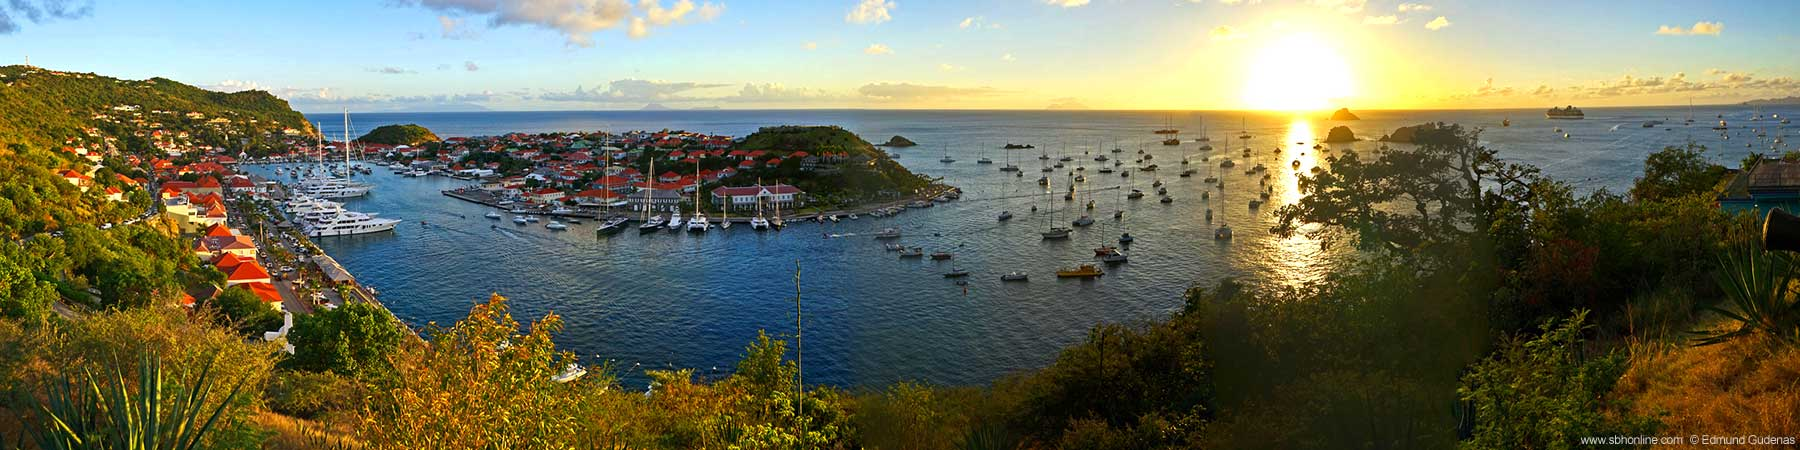 St barts vacations guide forums st barts villa rentals for St barts tours